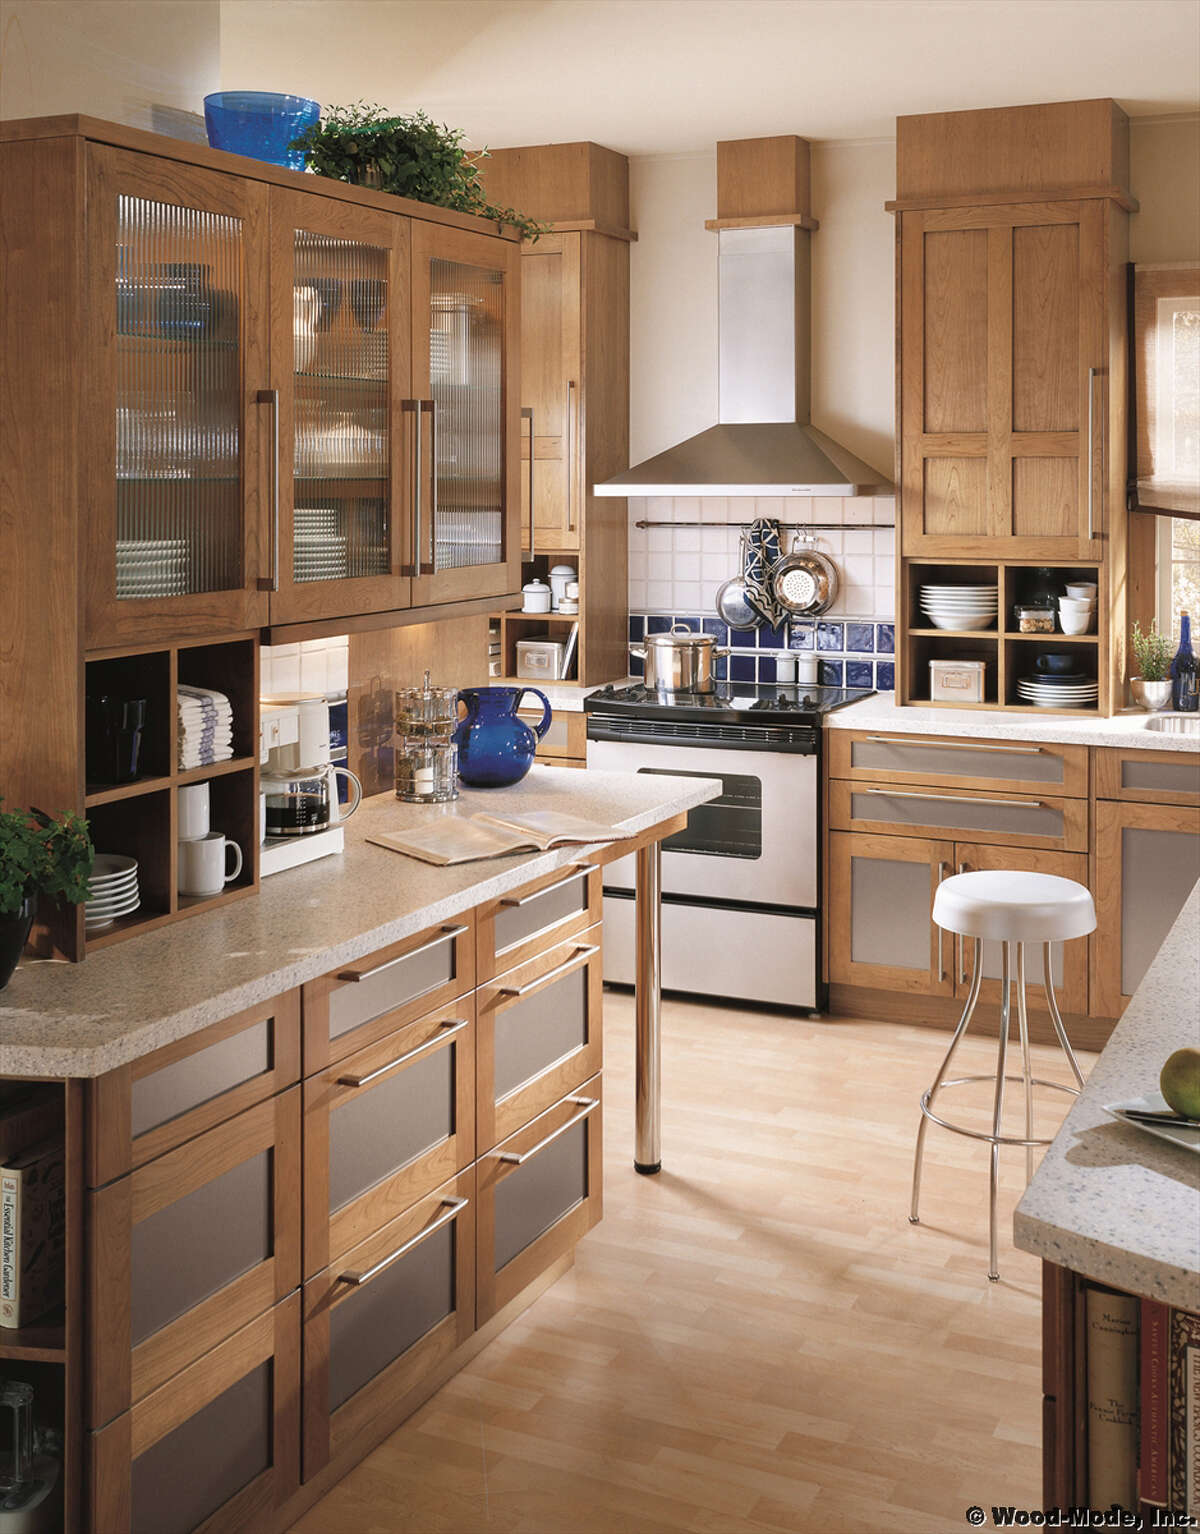 Are you thinking of remodeling your kitchen?  You may find some helpful ideas at this year's Times Union Home Expo. Click through the slideshow to see the work and products of some of the show's exhibitors. Learn more about Times Union Home Expo 2015.